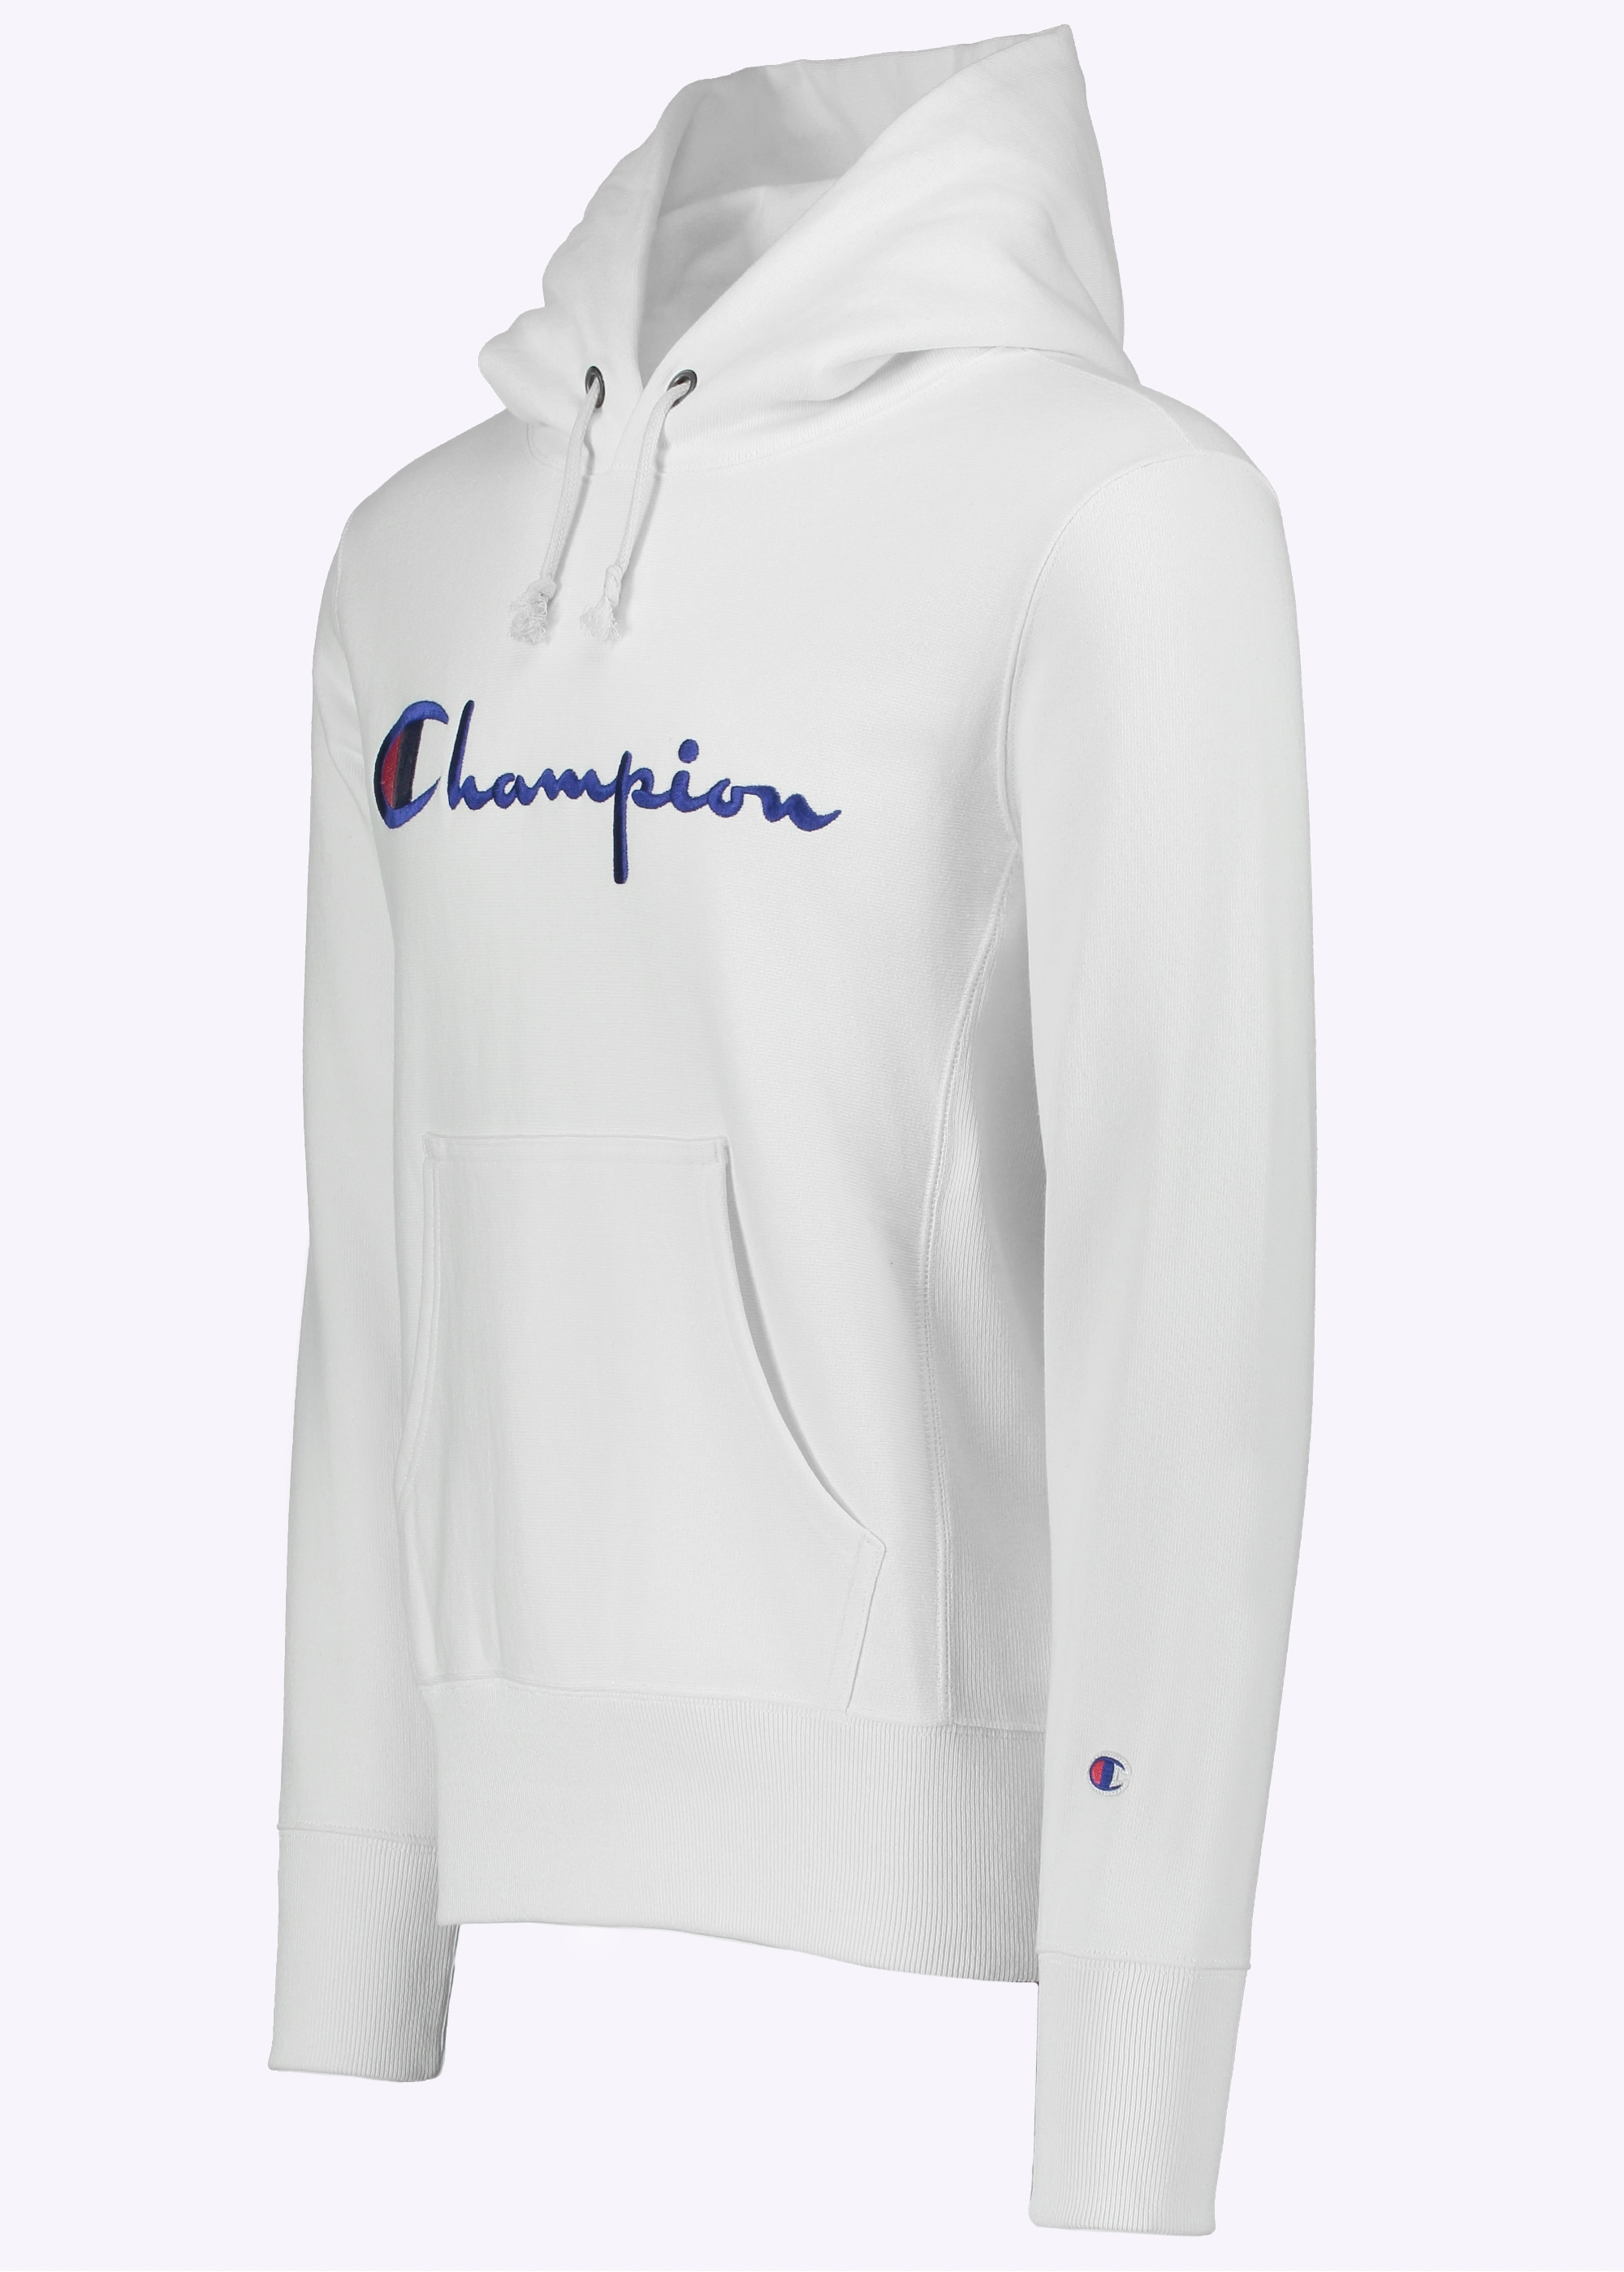 Shop for White hoodies & sweatshirts from Zazzle. Choose a design from our huge selection of images, artwork, & photos.